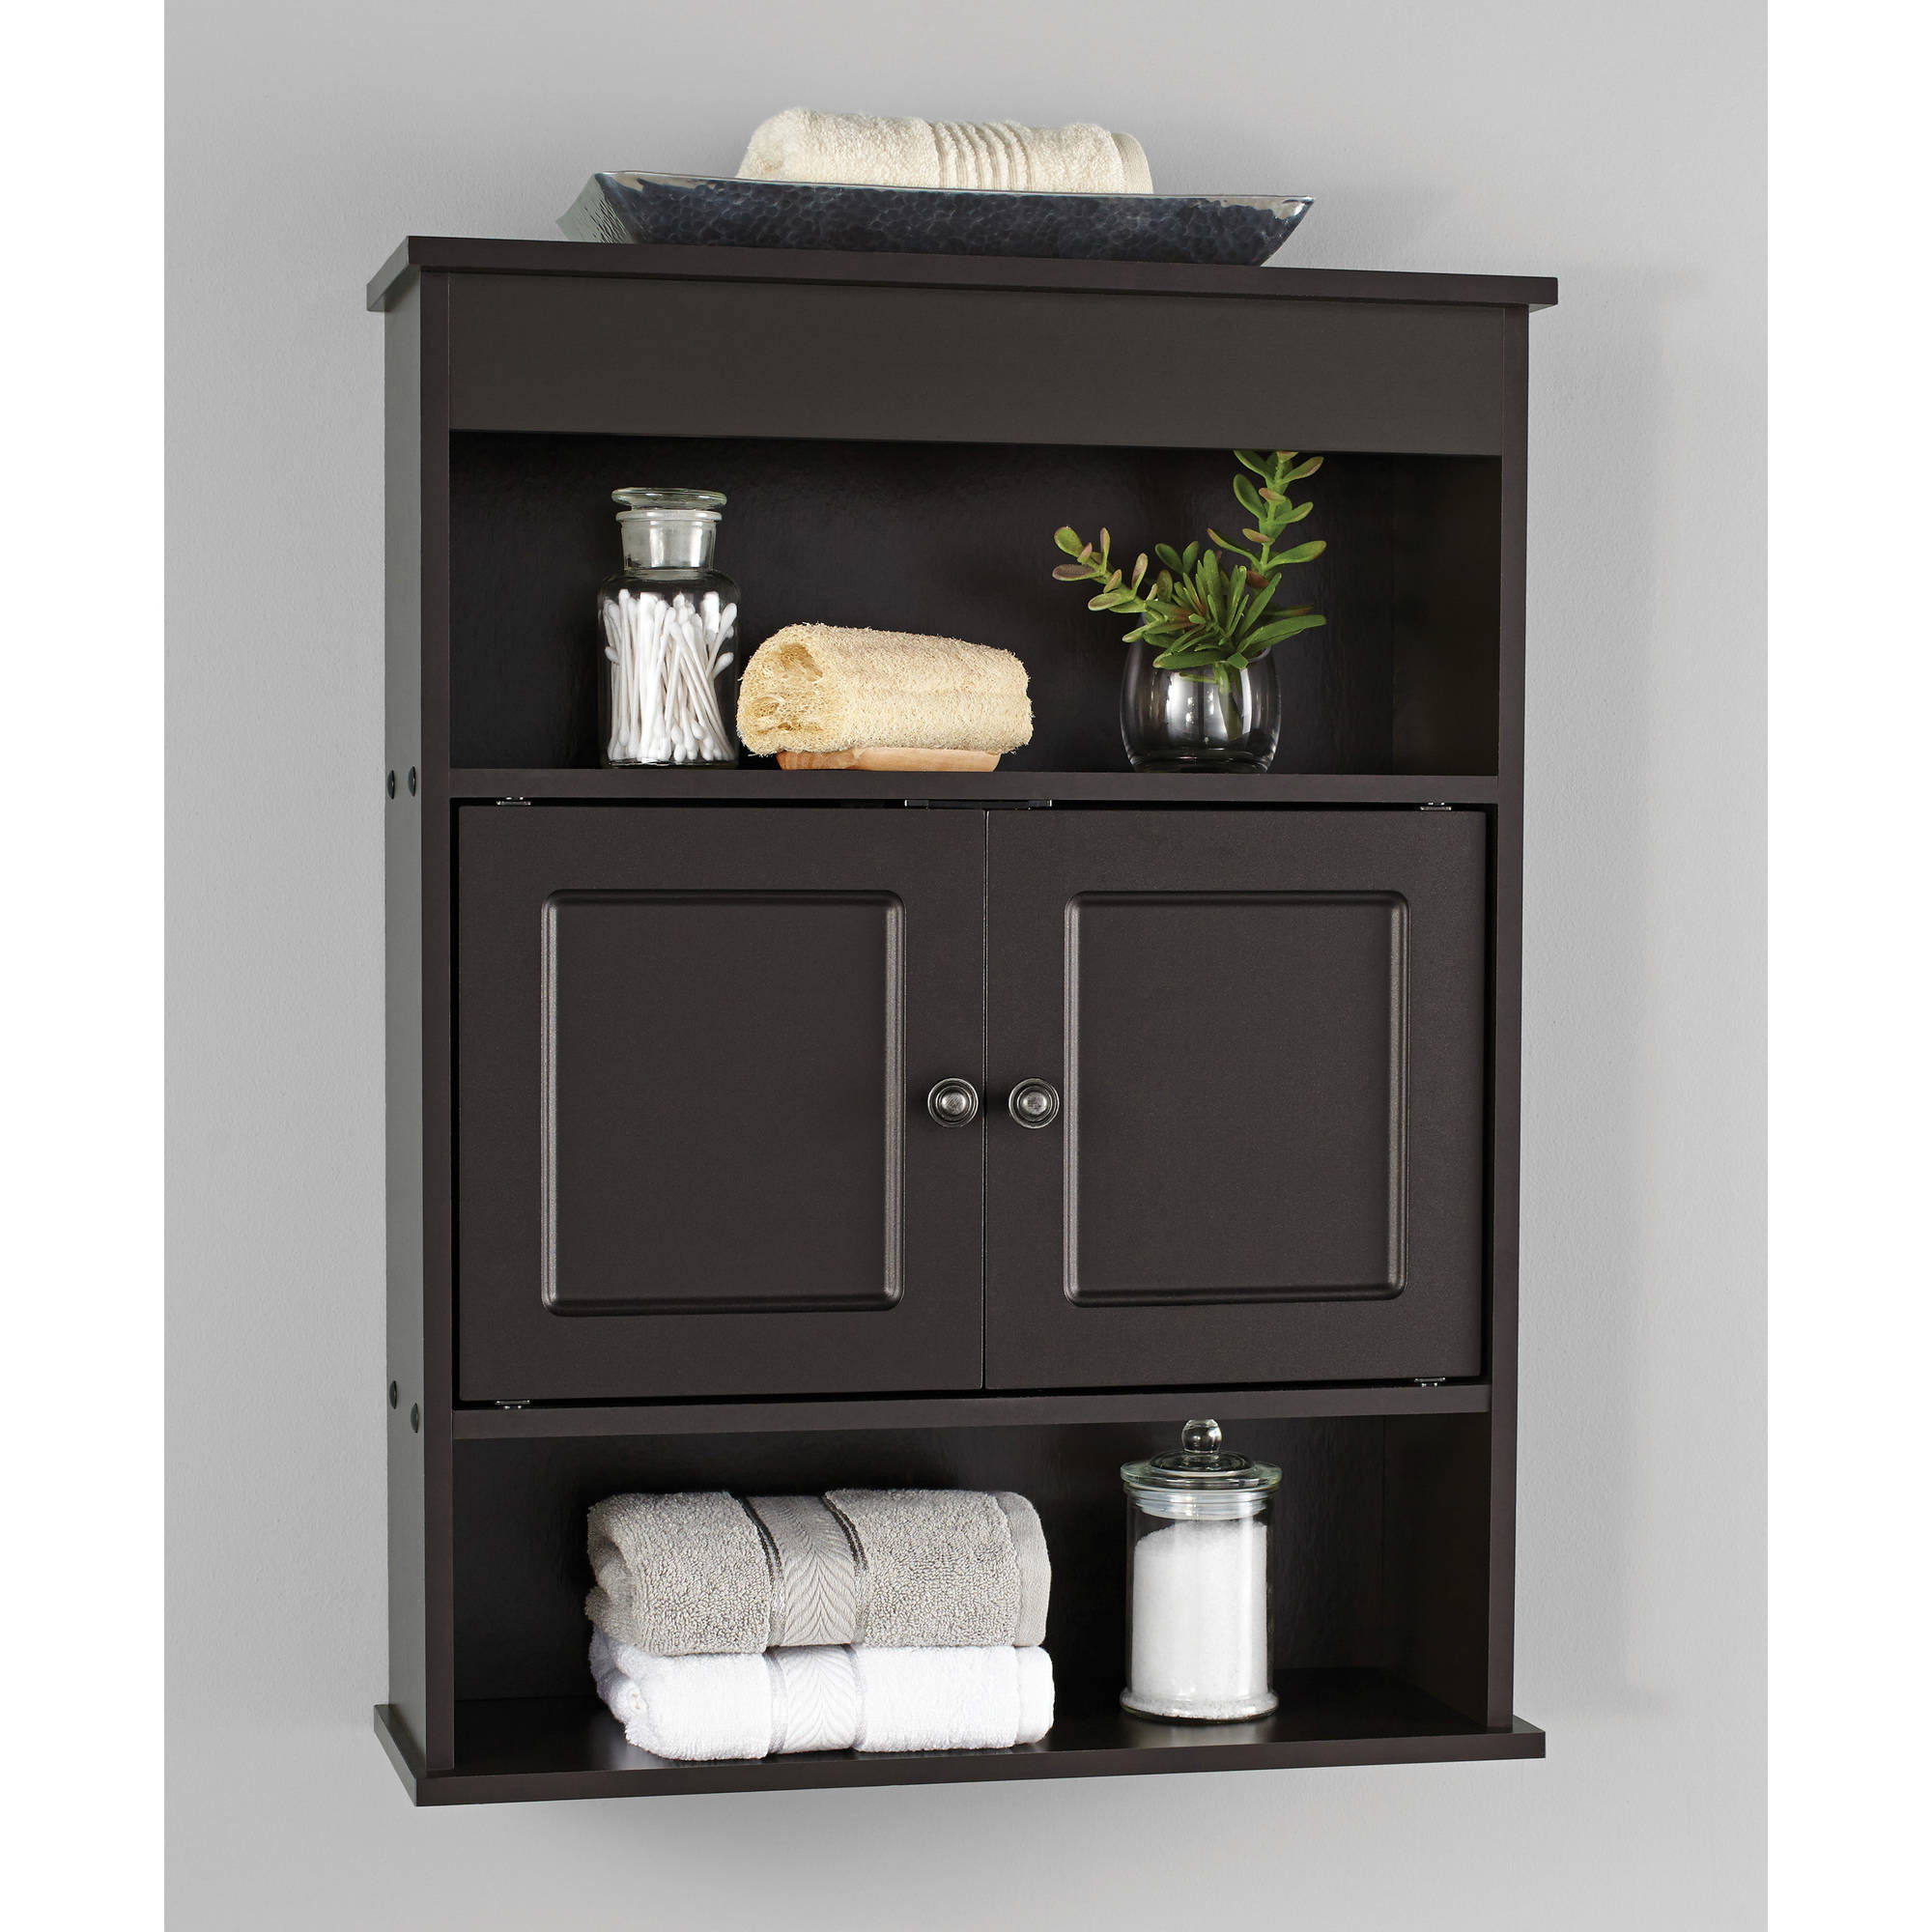 Charming Chapter Bathroom Wall Cabinet, Espresso